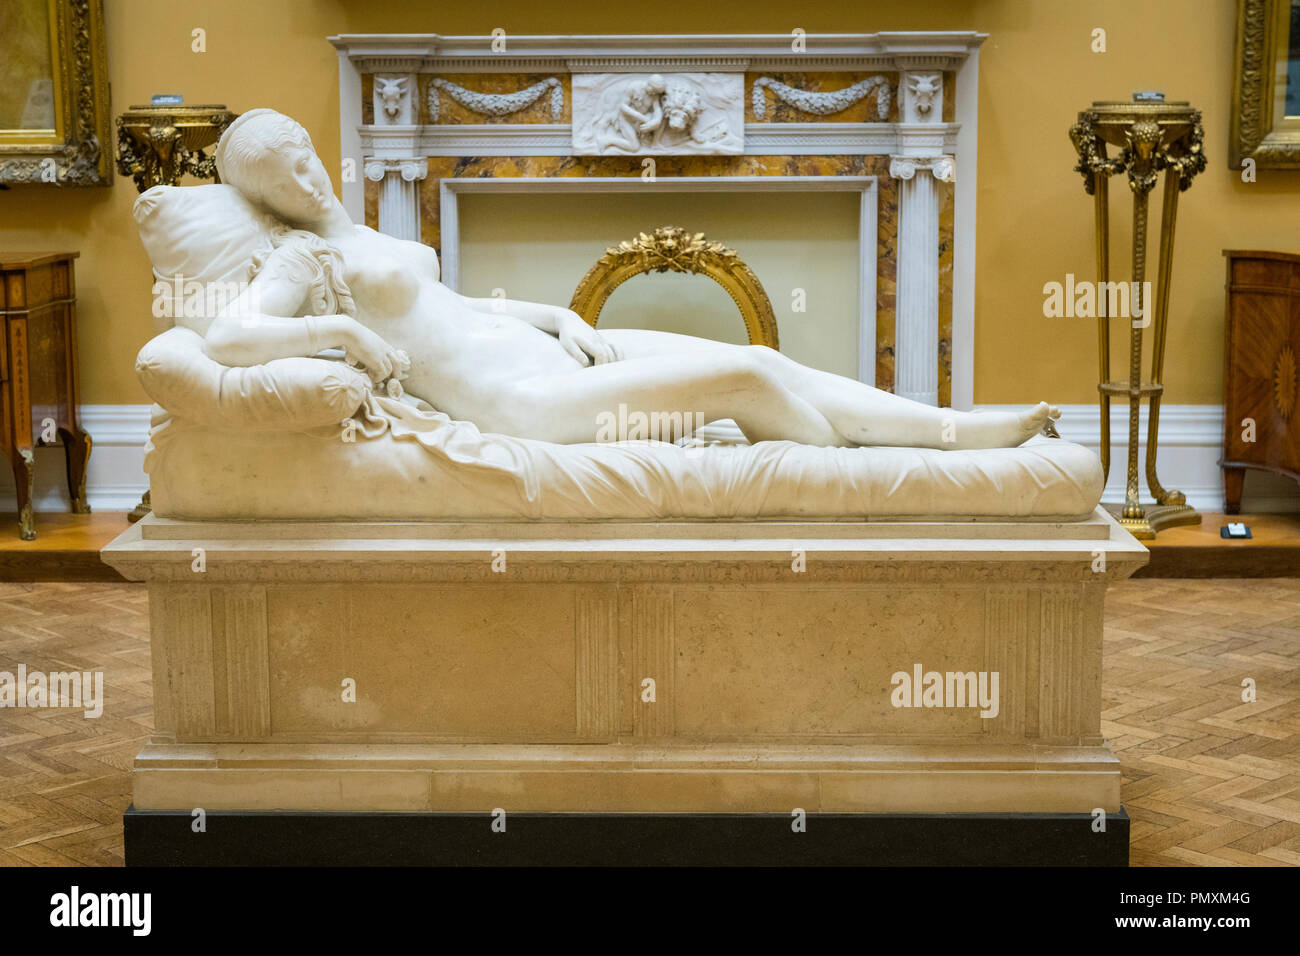 Liverpool Wirral Port Sunlight Village The Lady Lever Art Gallery neo-classical marble sculpture after Lorenzo Bartolini c1830 reclining Venus - Stock Image